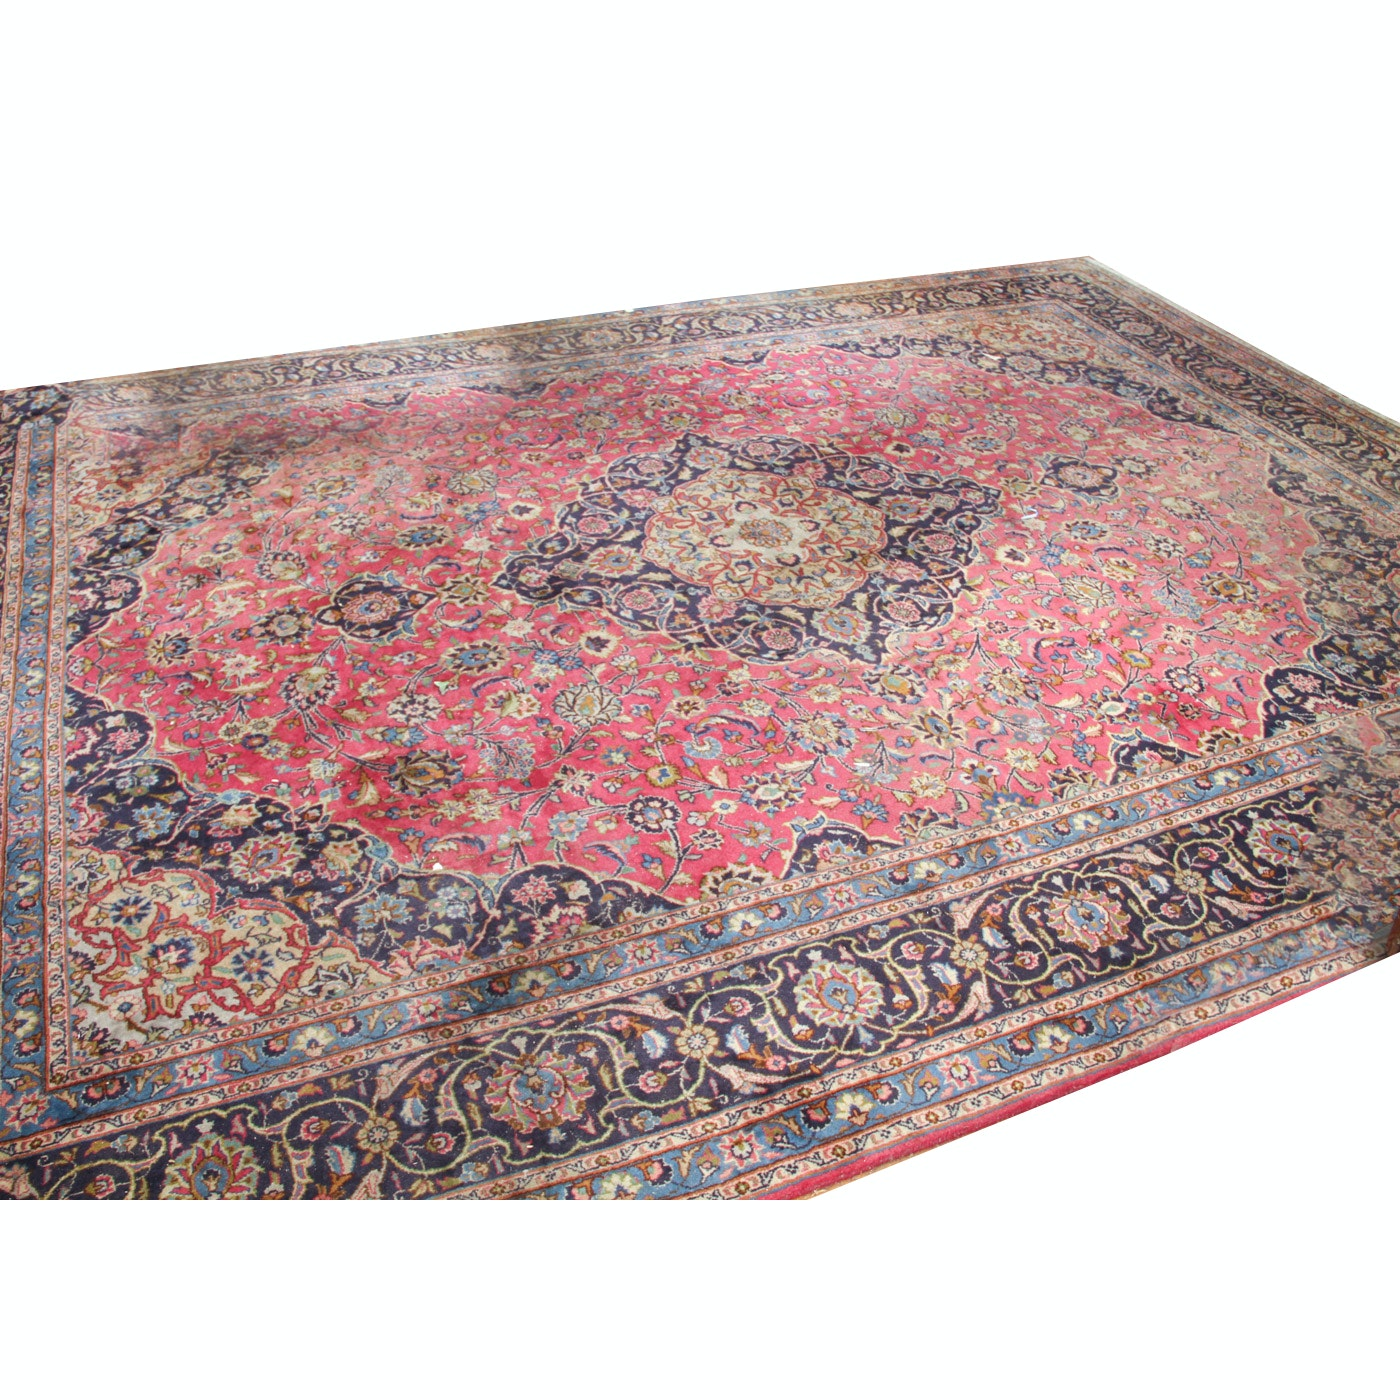 Large Hand-Knotted Kashmar Wool Area Rug